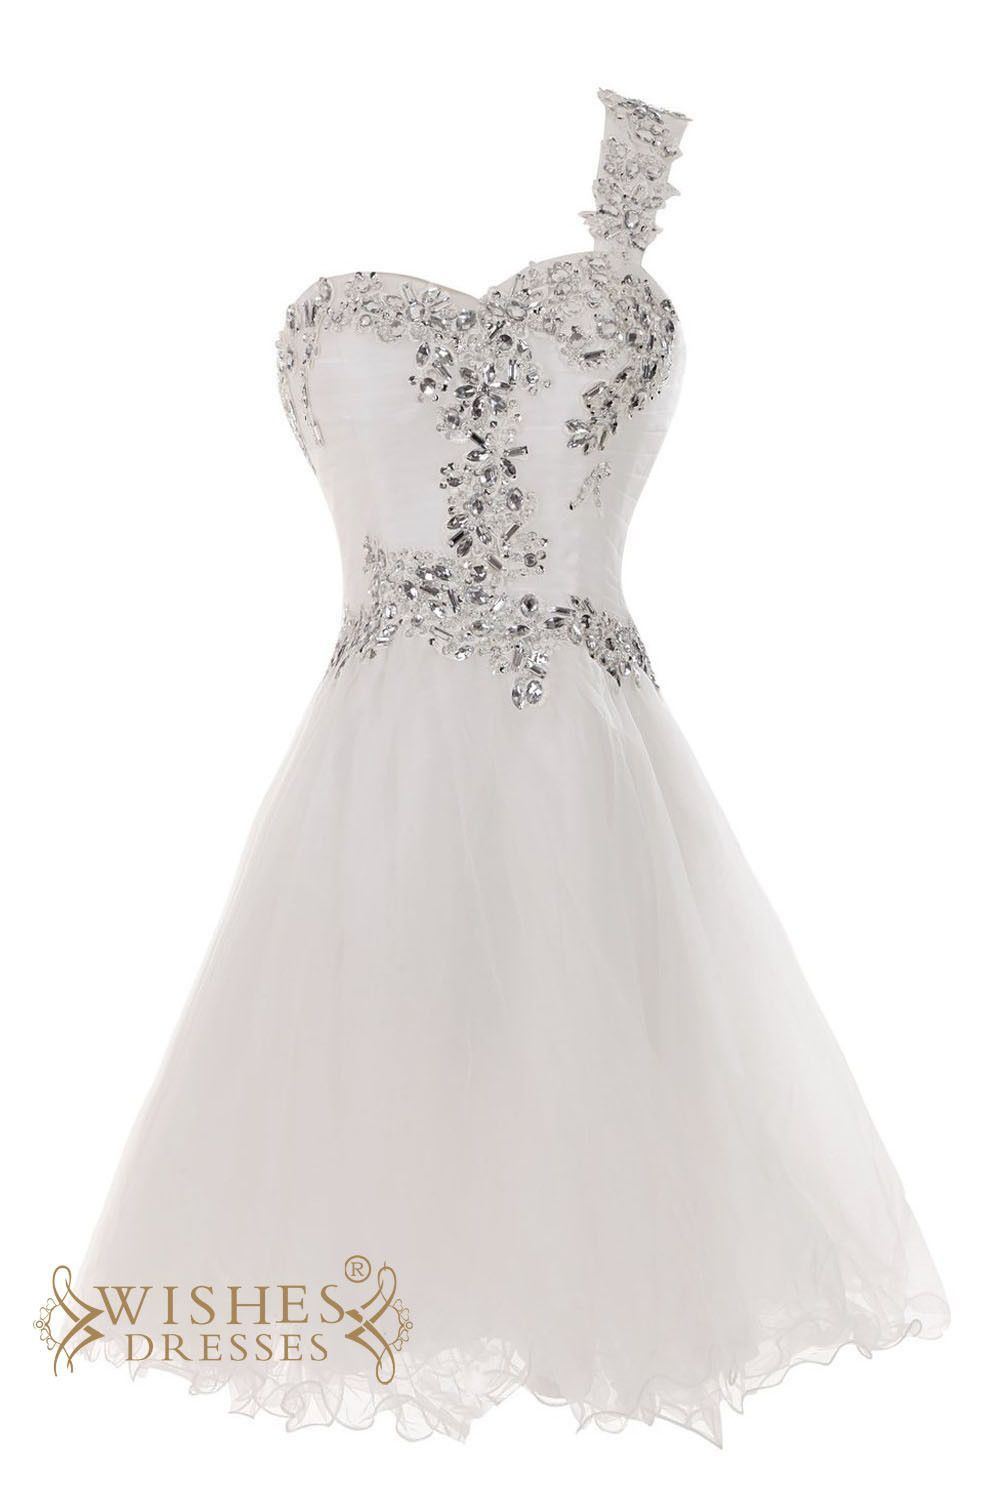 c6cc828c2cb A-line formal Sweetheart organza bridal gown with beaded one strap. sparkle  rhinestones top with cute look